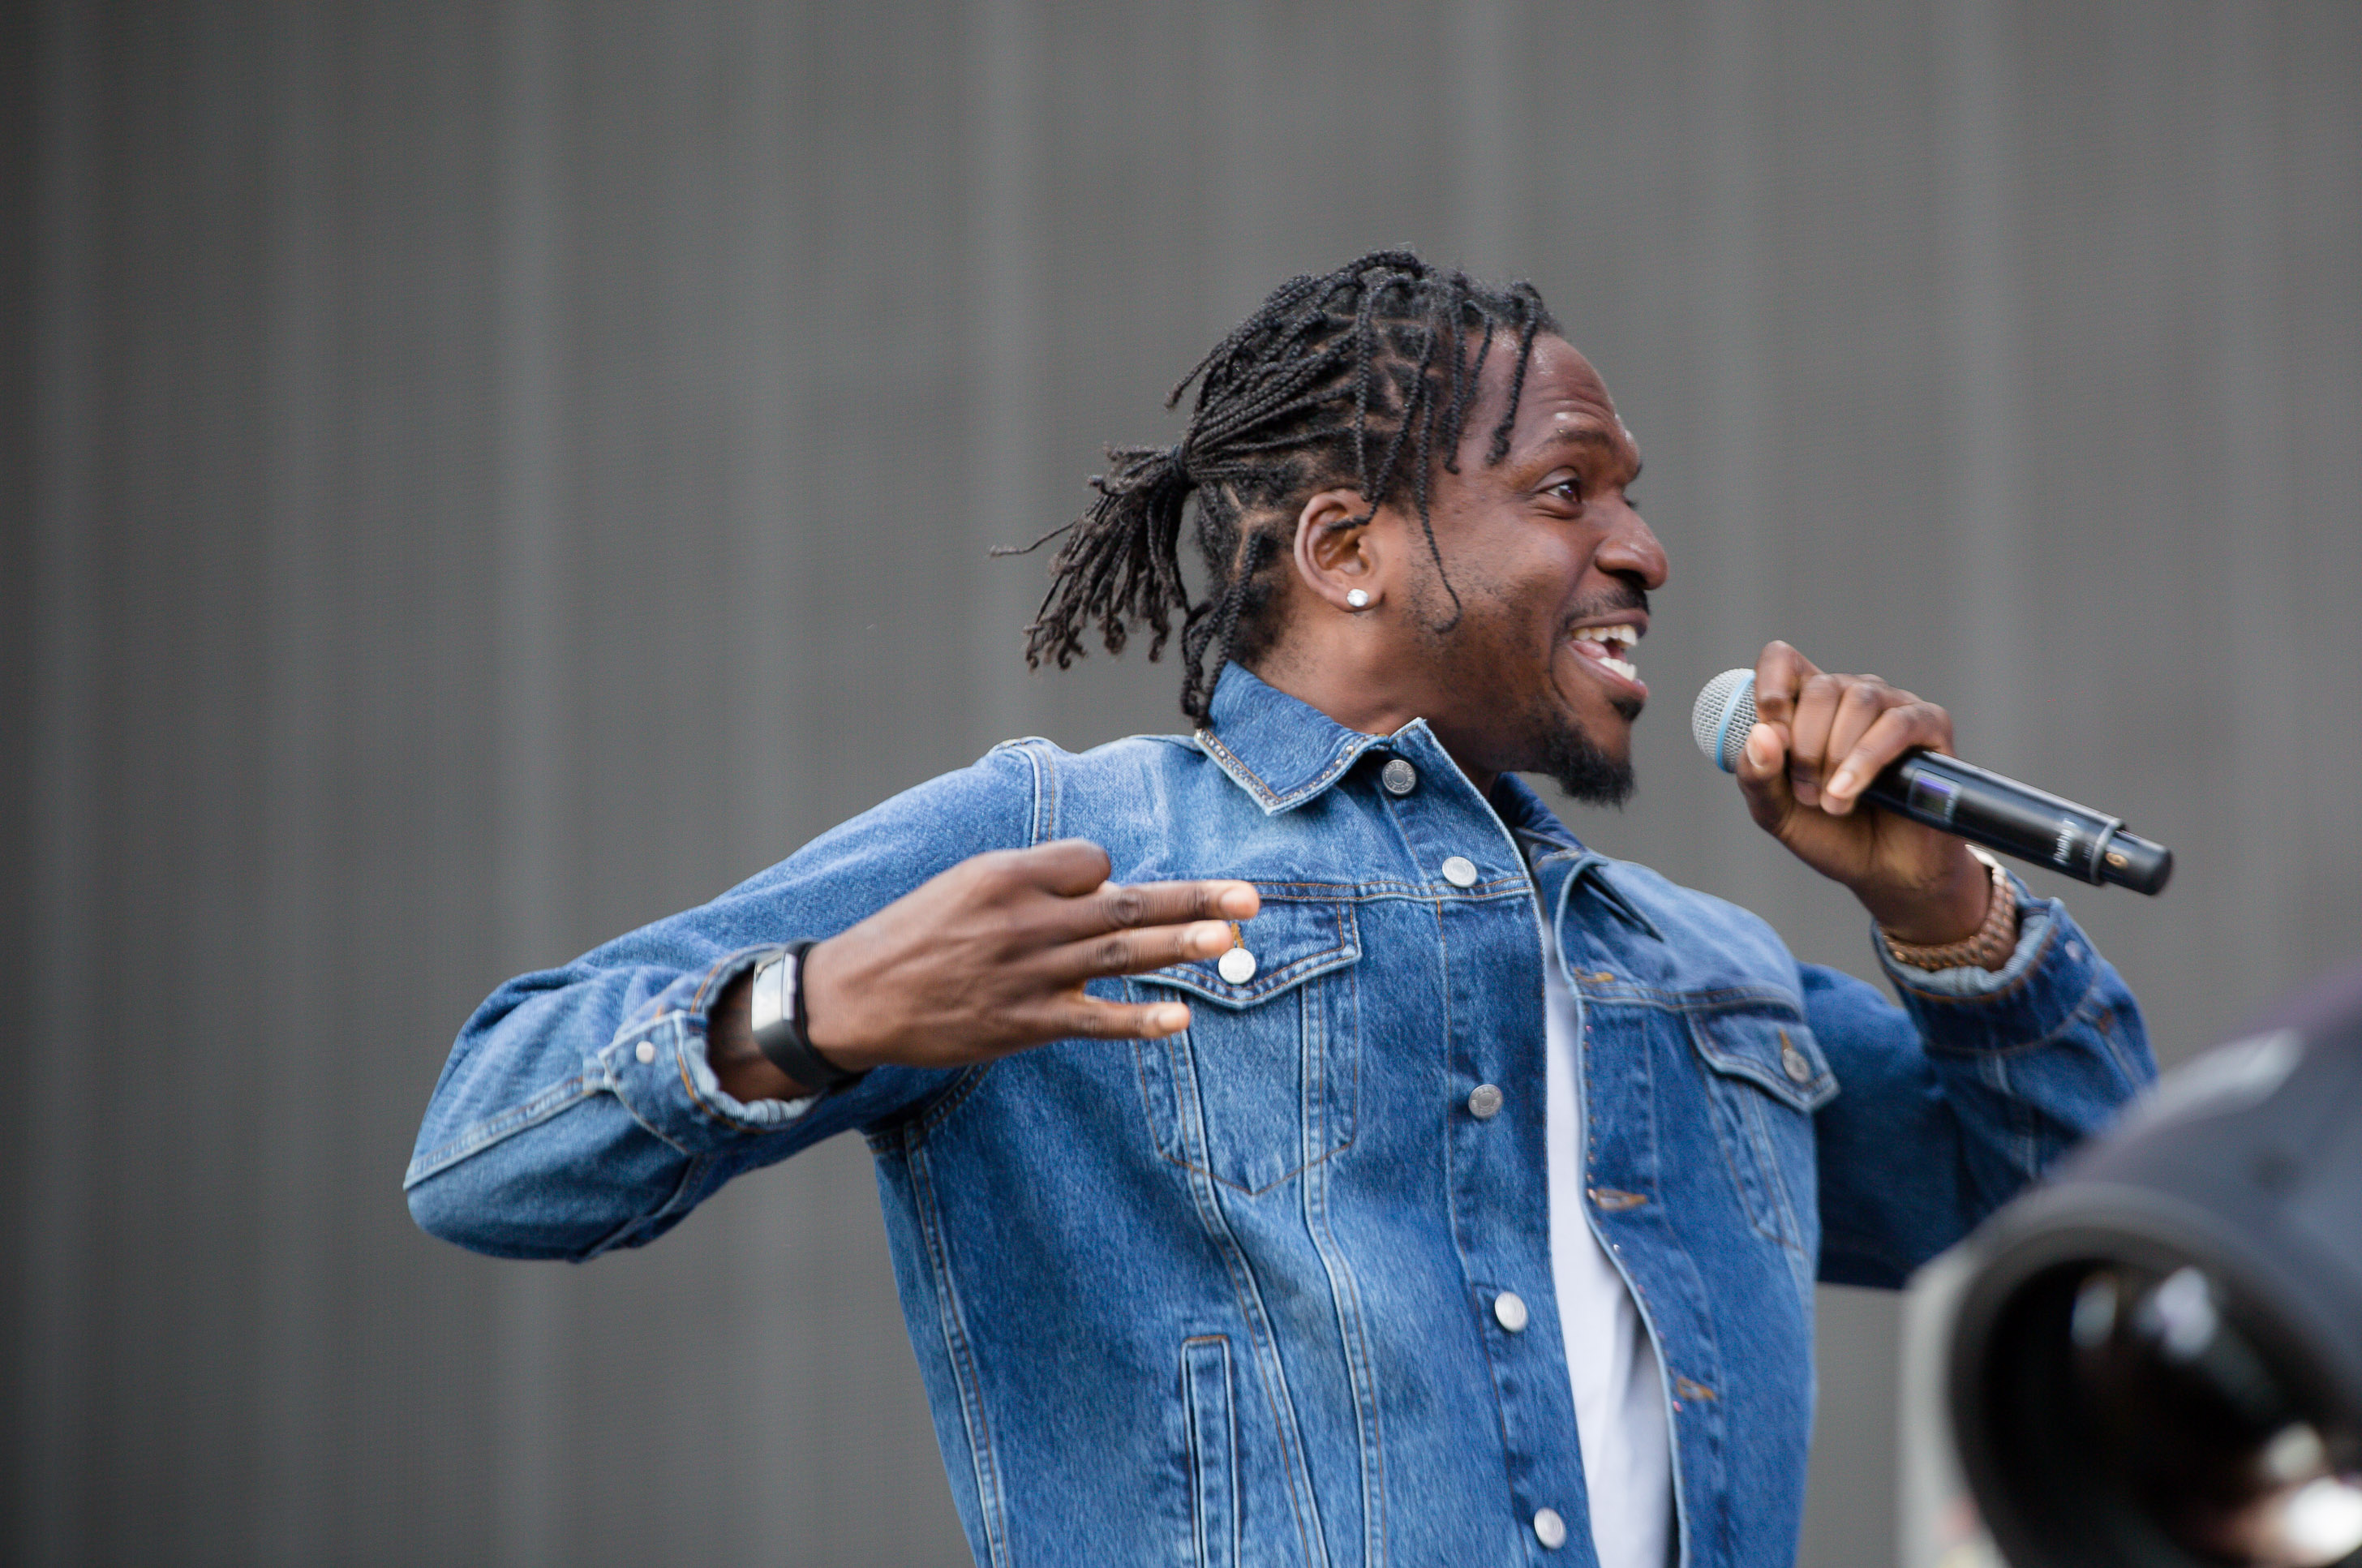 Drug References In Pusha T's Music Have Stopped Some Of His Bags